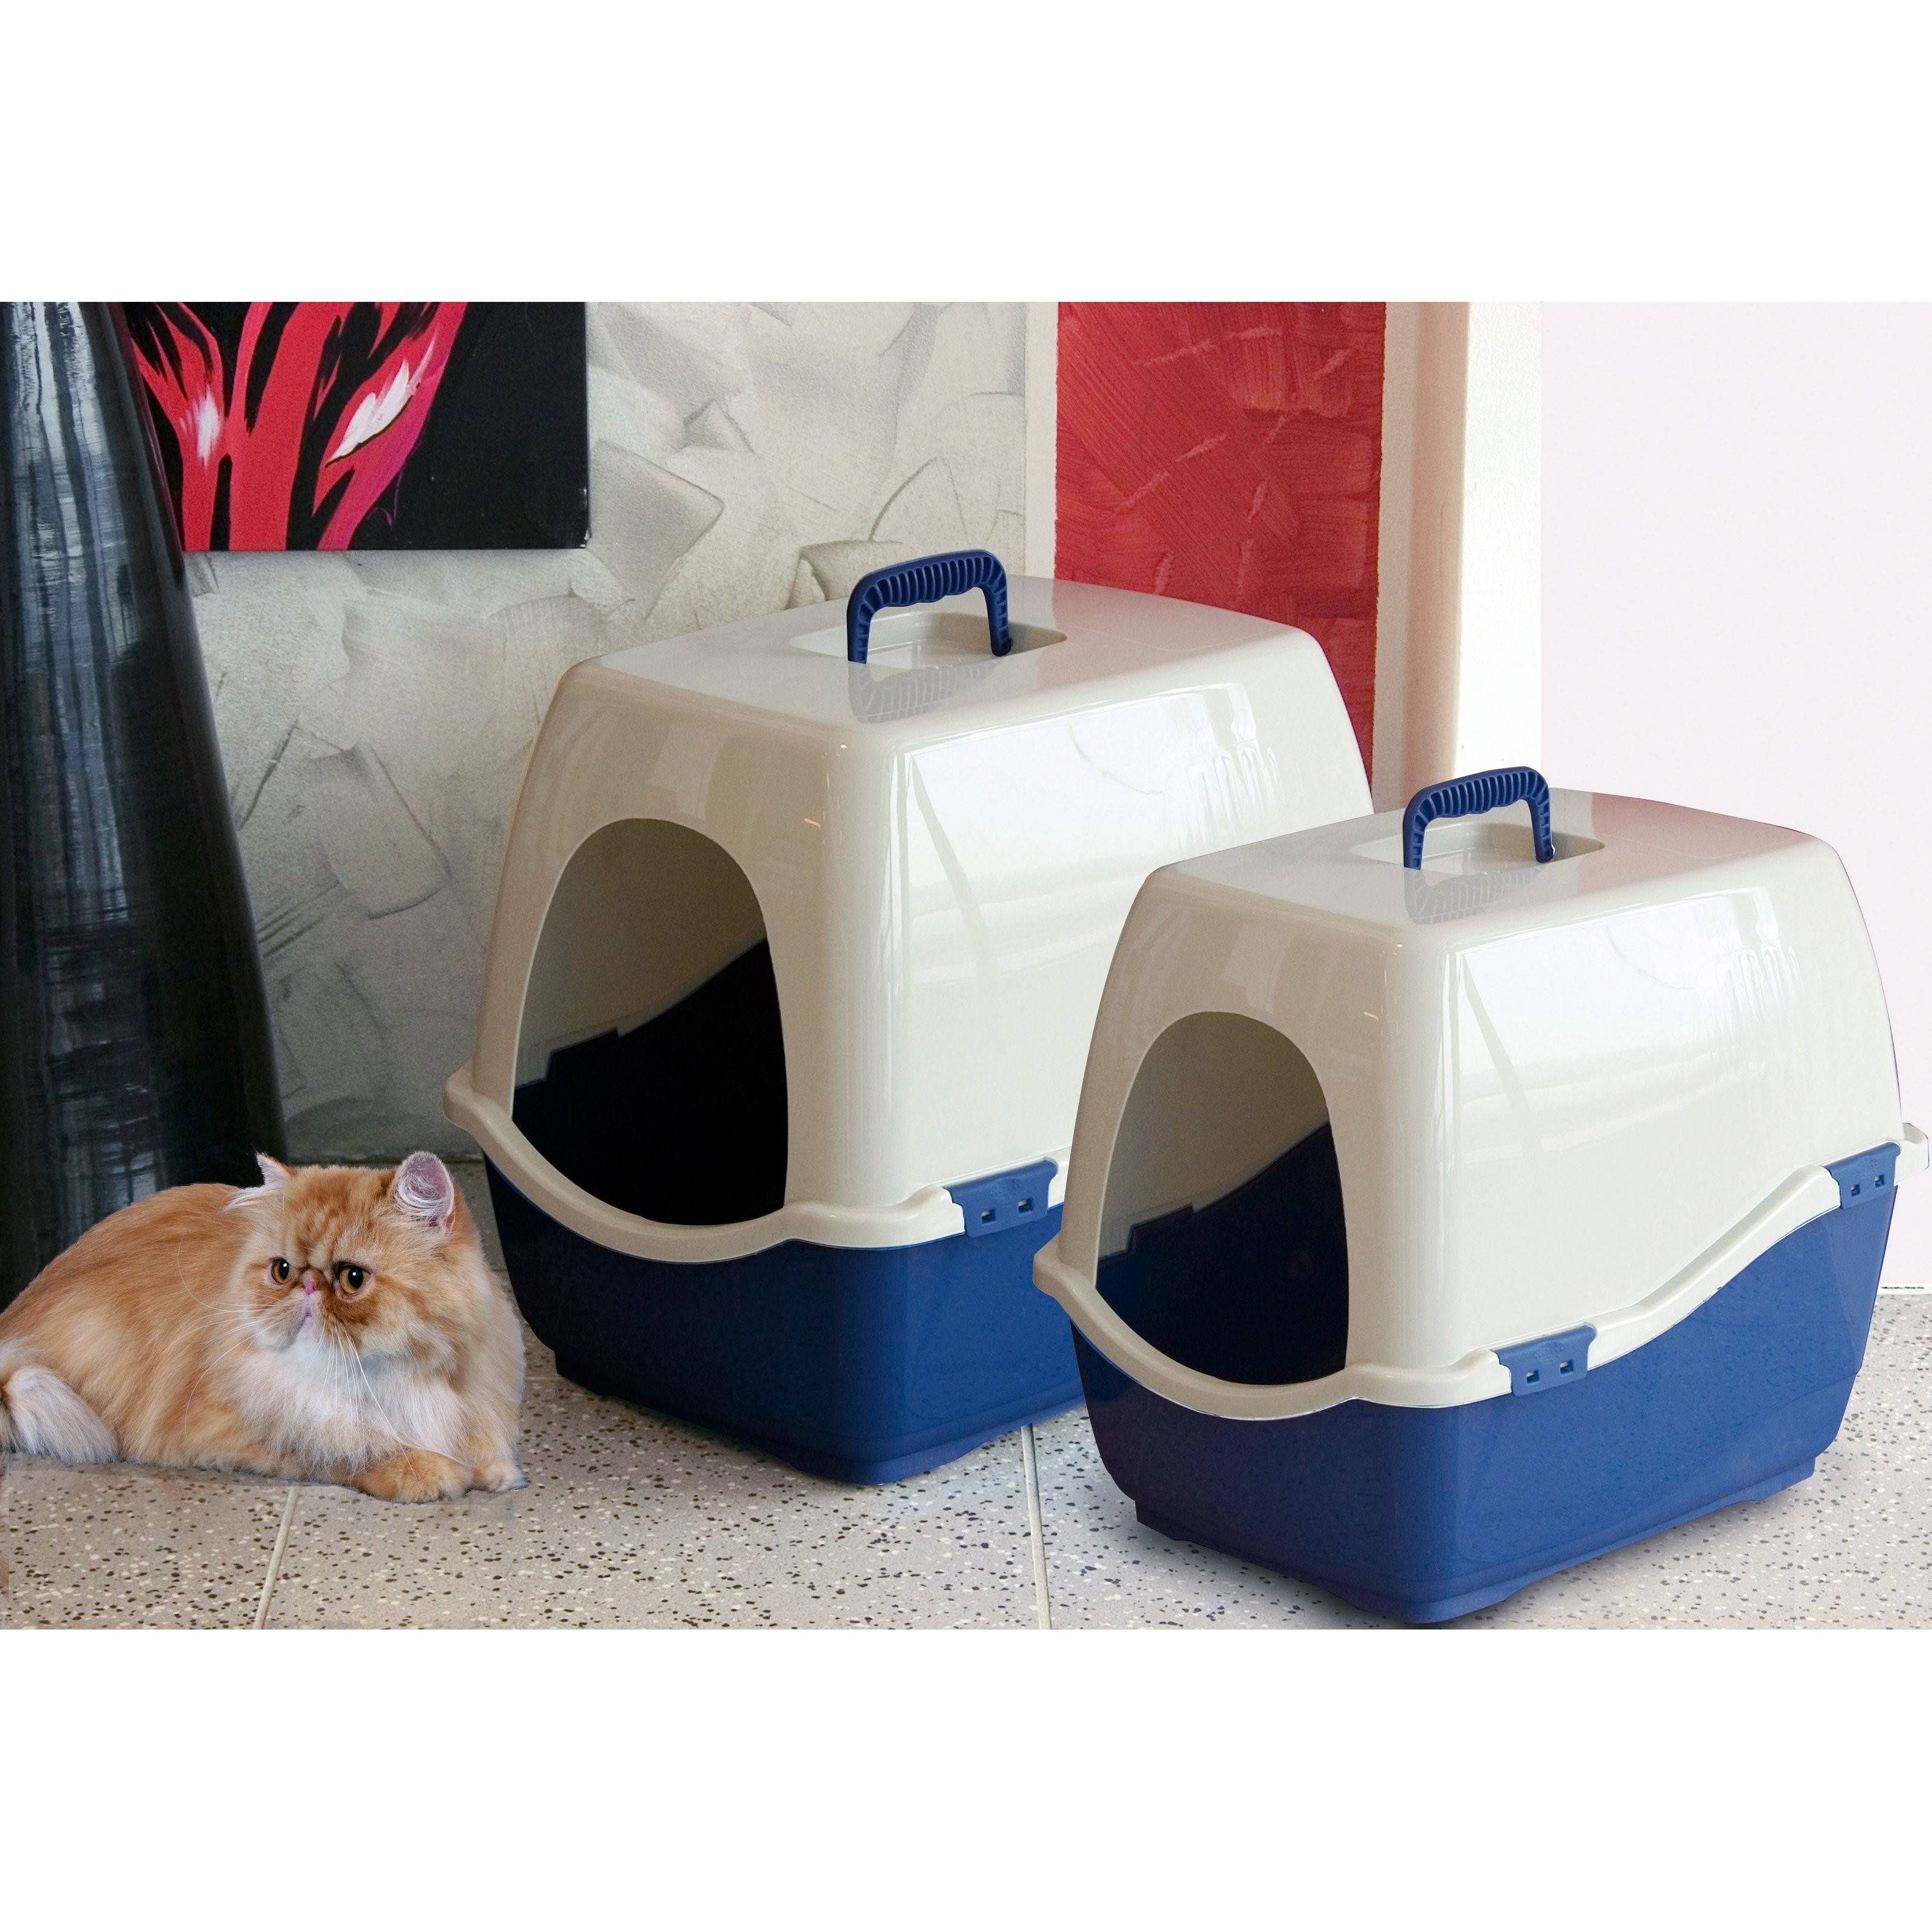 Marchioro Bill Covered Cat Litter Box